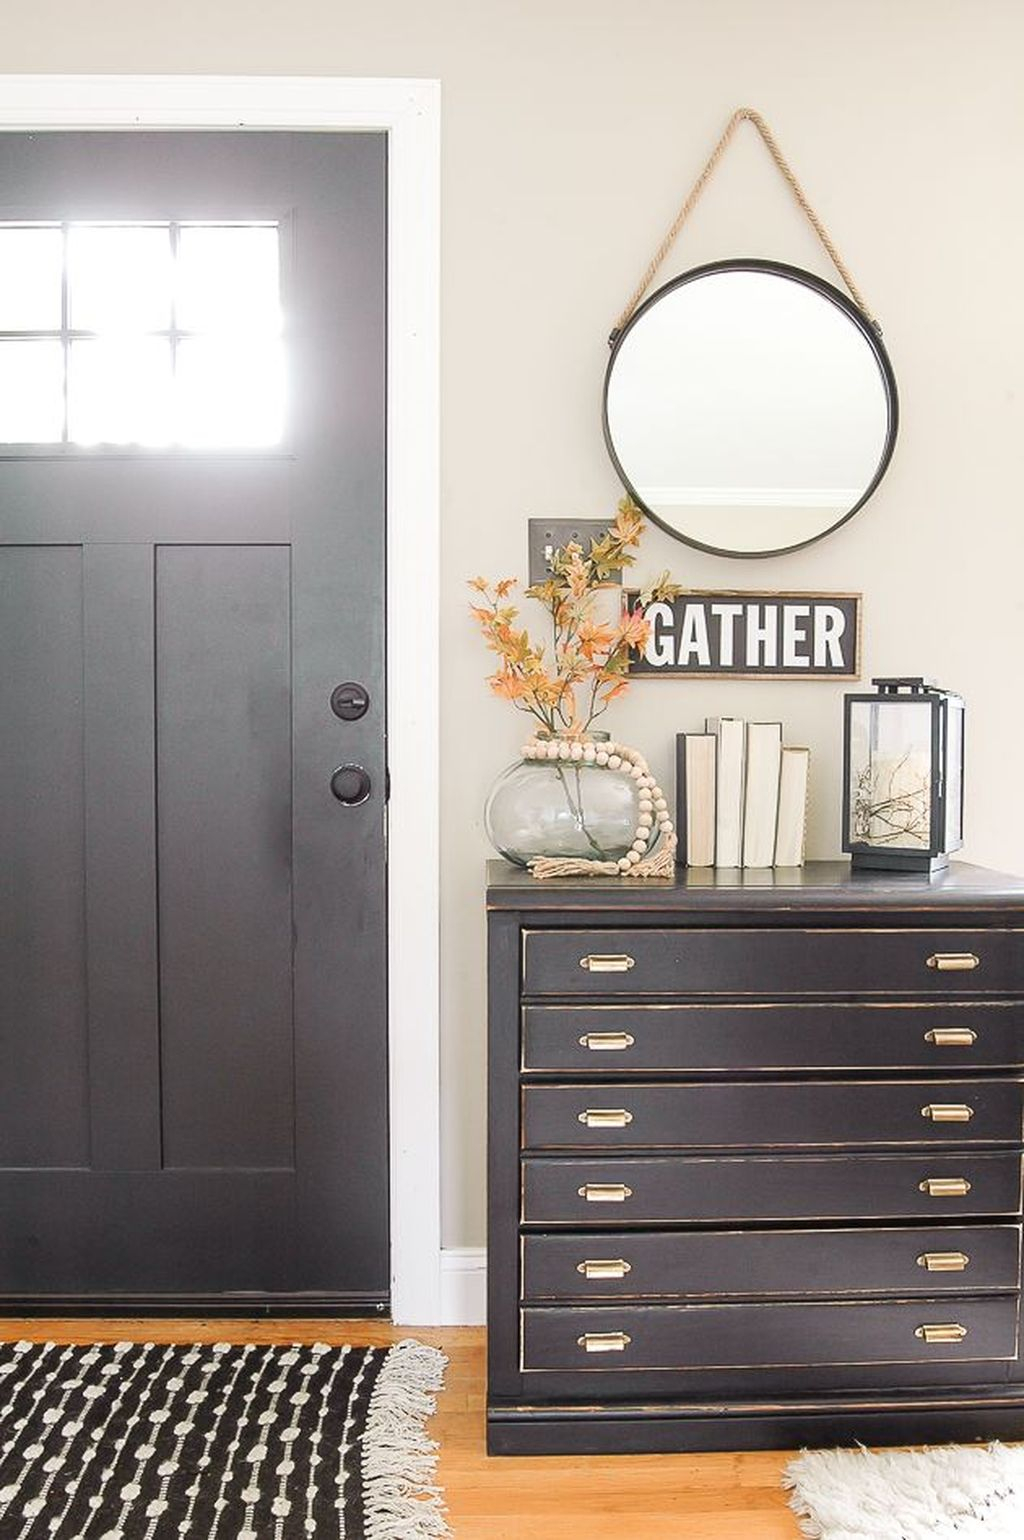 Splendid Entryway Home Décor Ideas That Make Your Place Look Cool 05